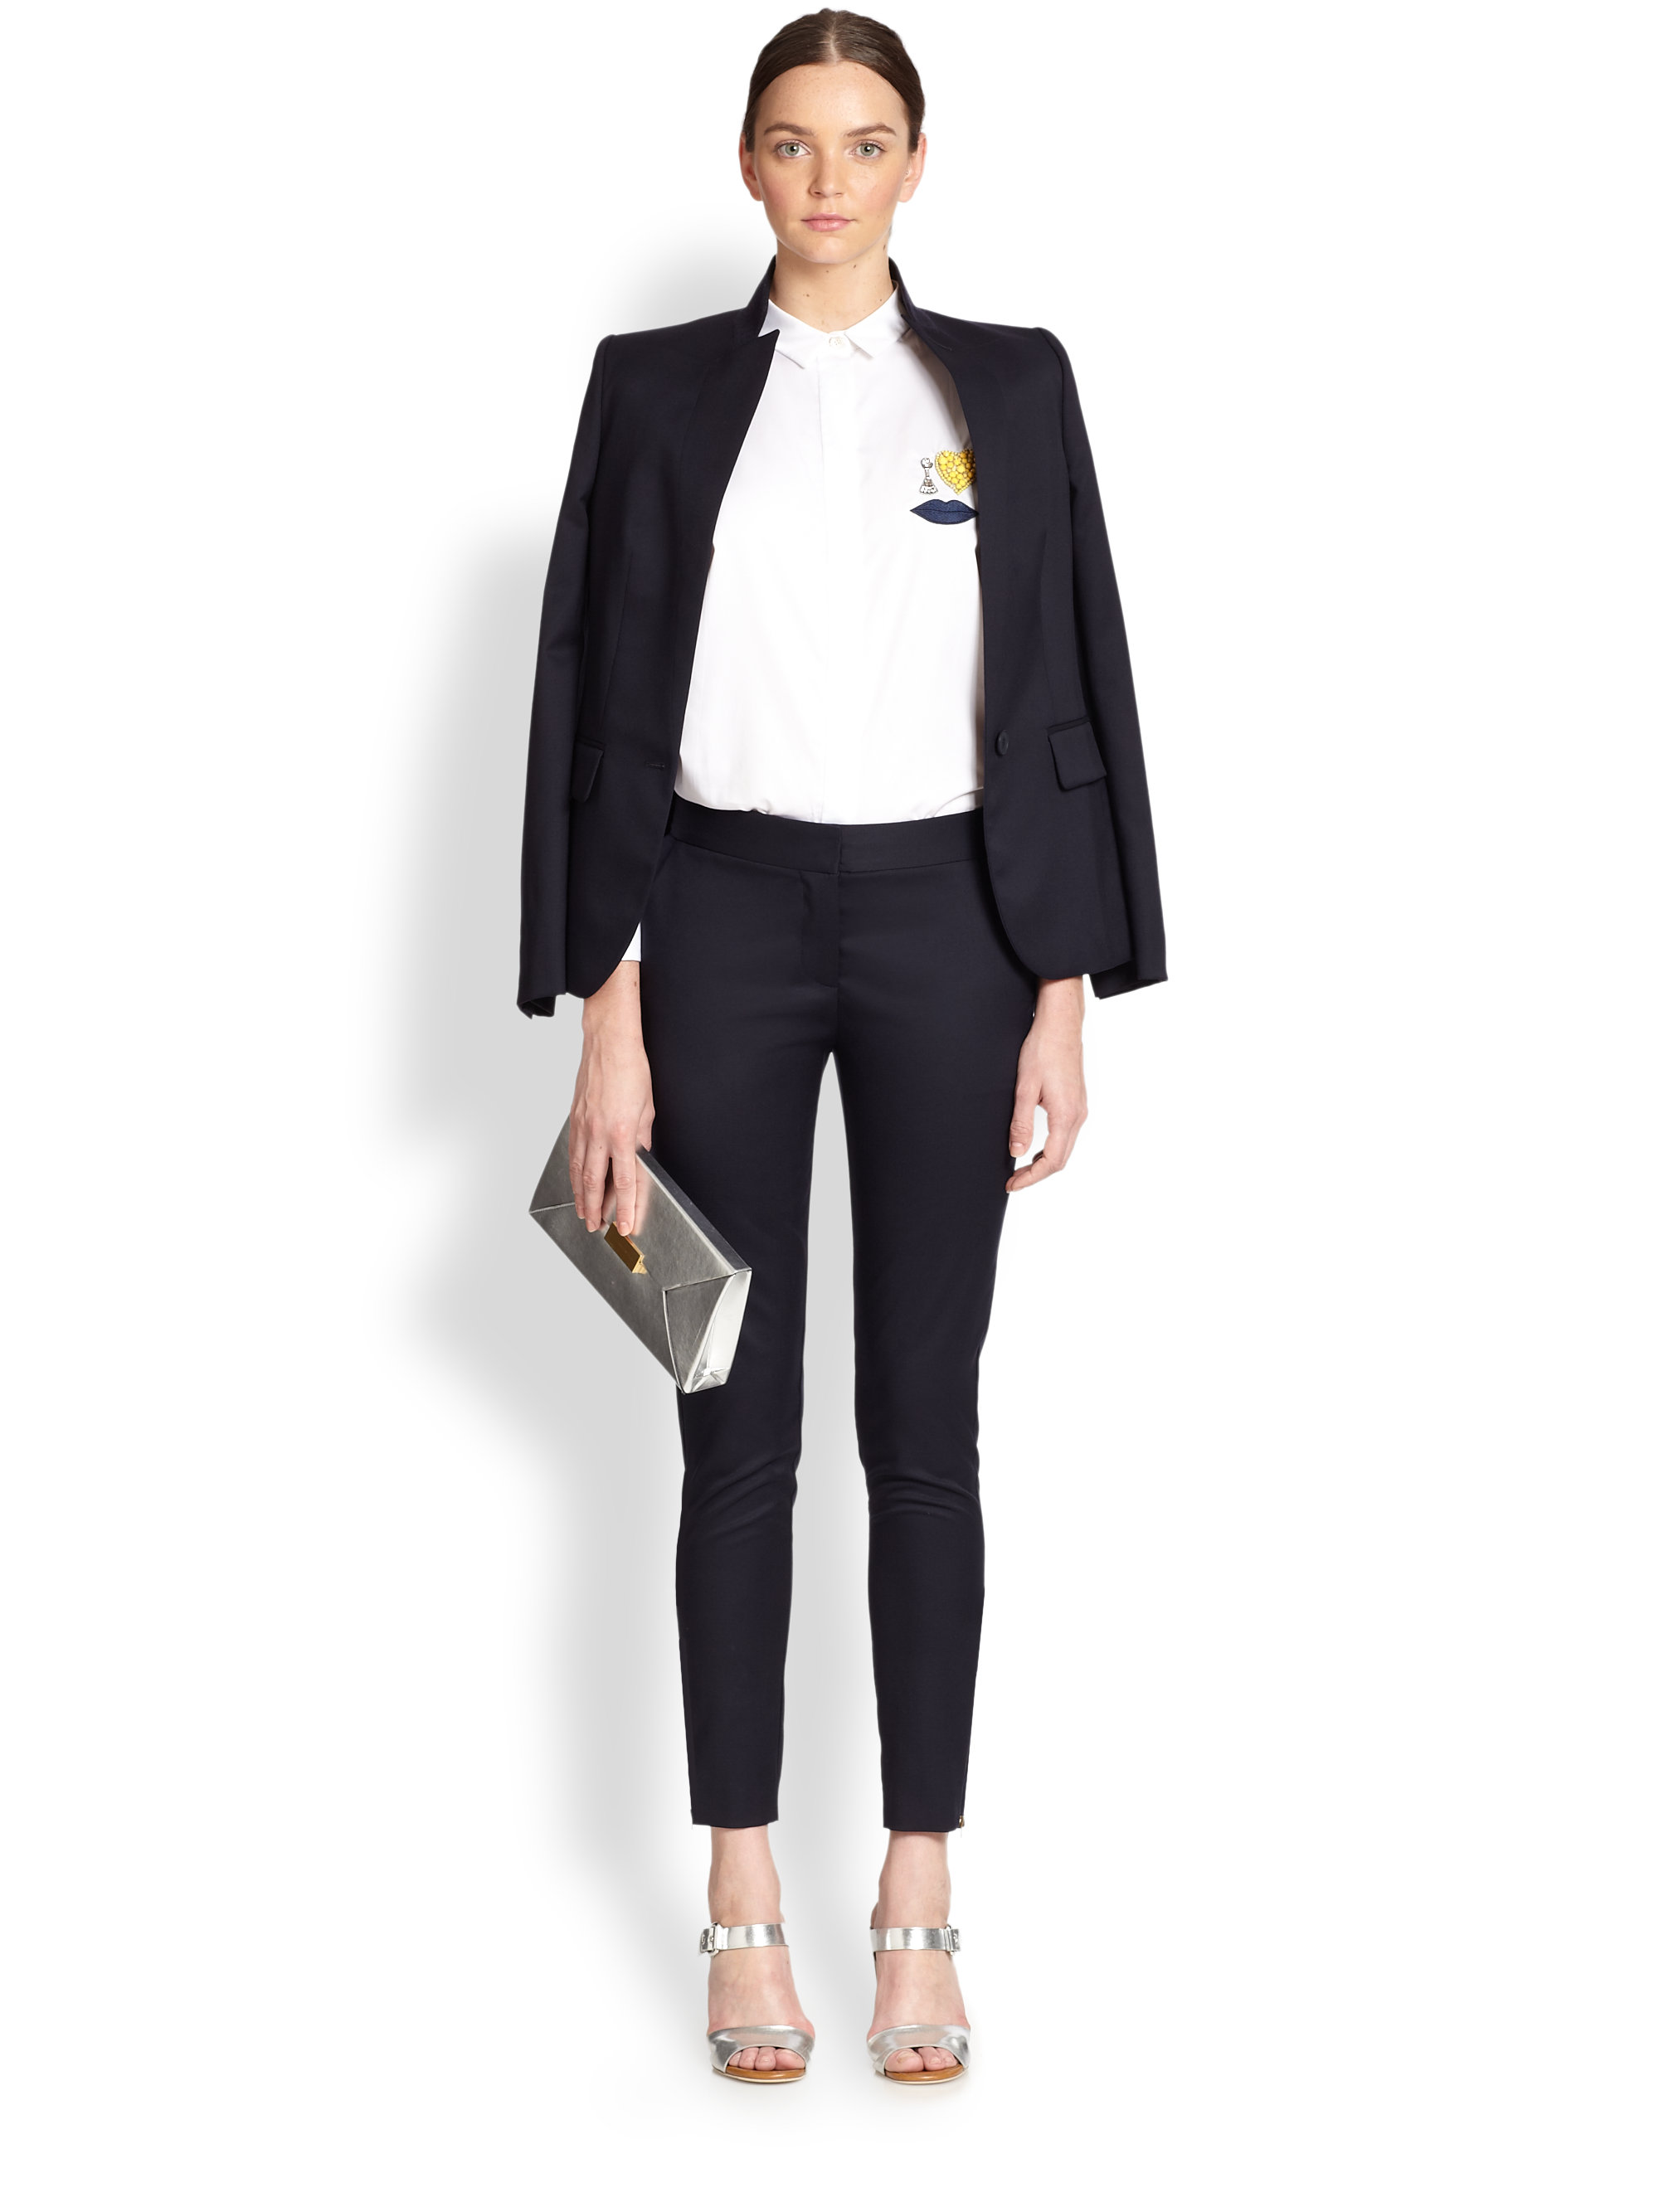 Stella mccartney Tuxedo Suit Jacket in Blue